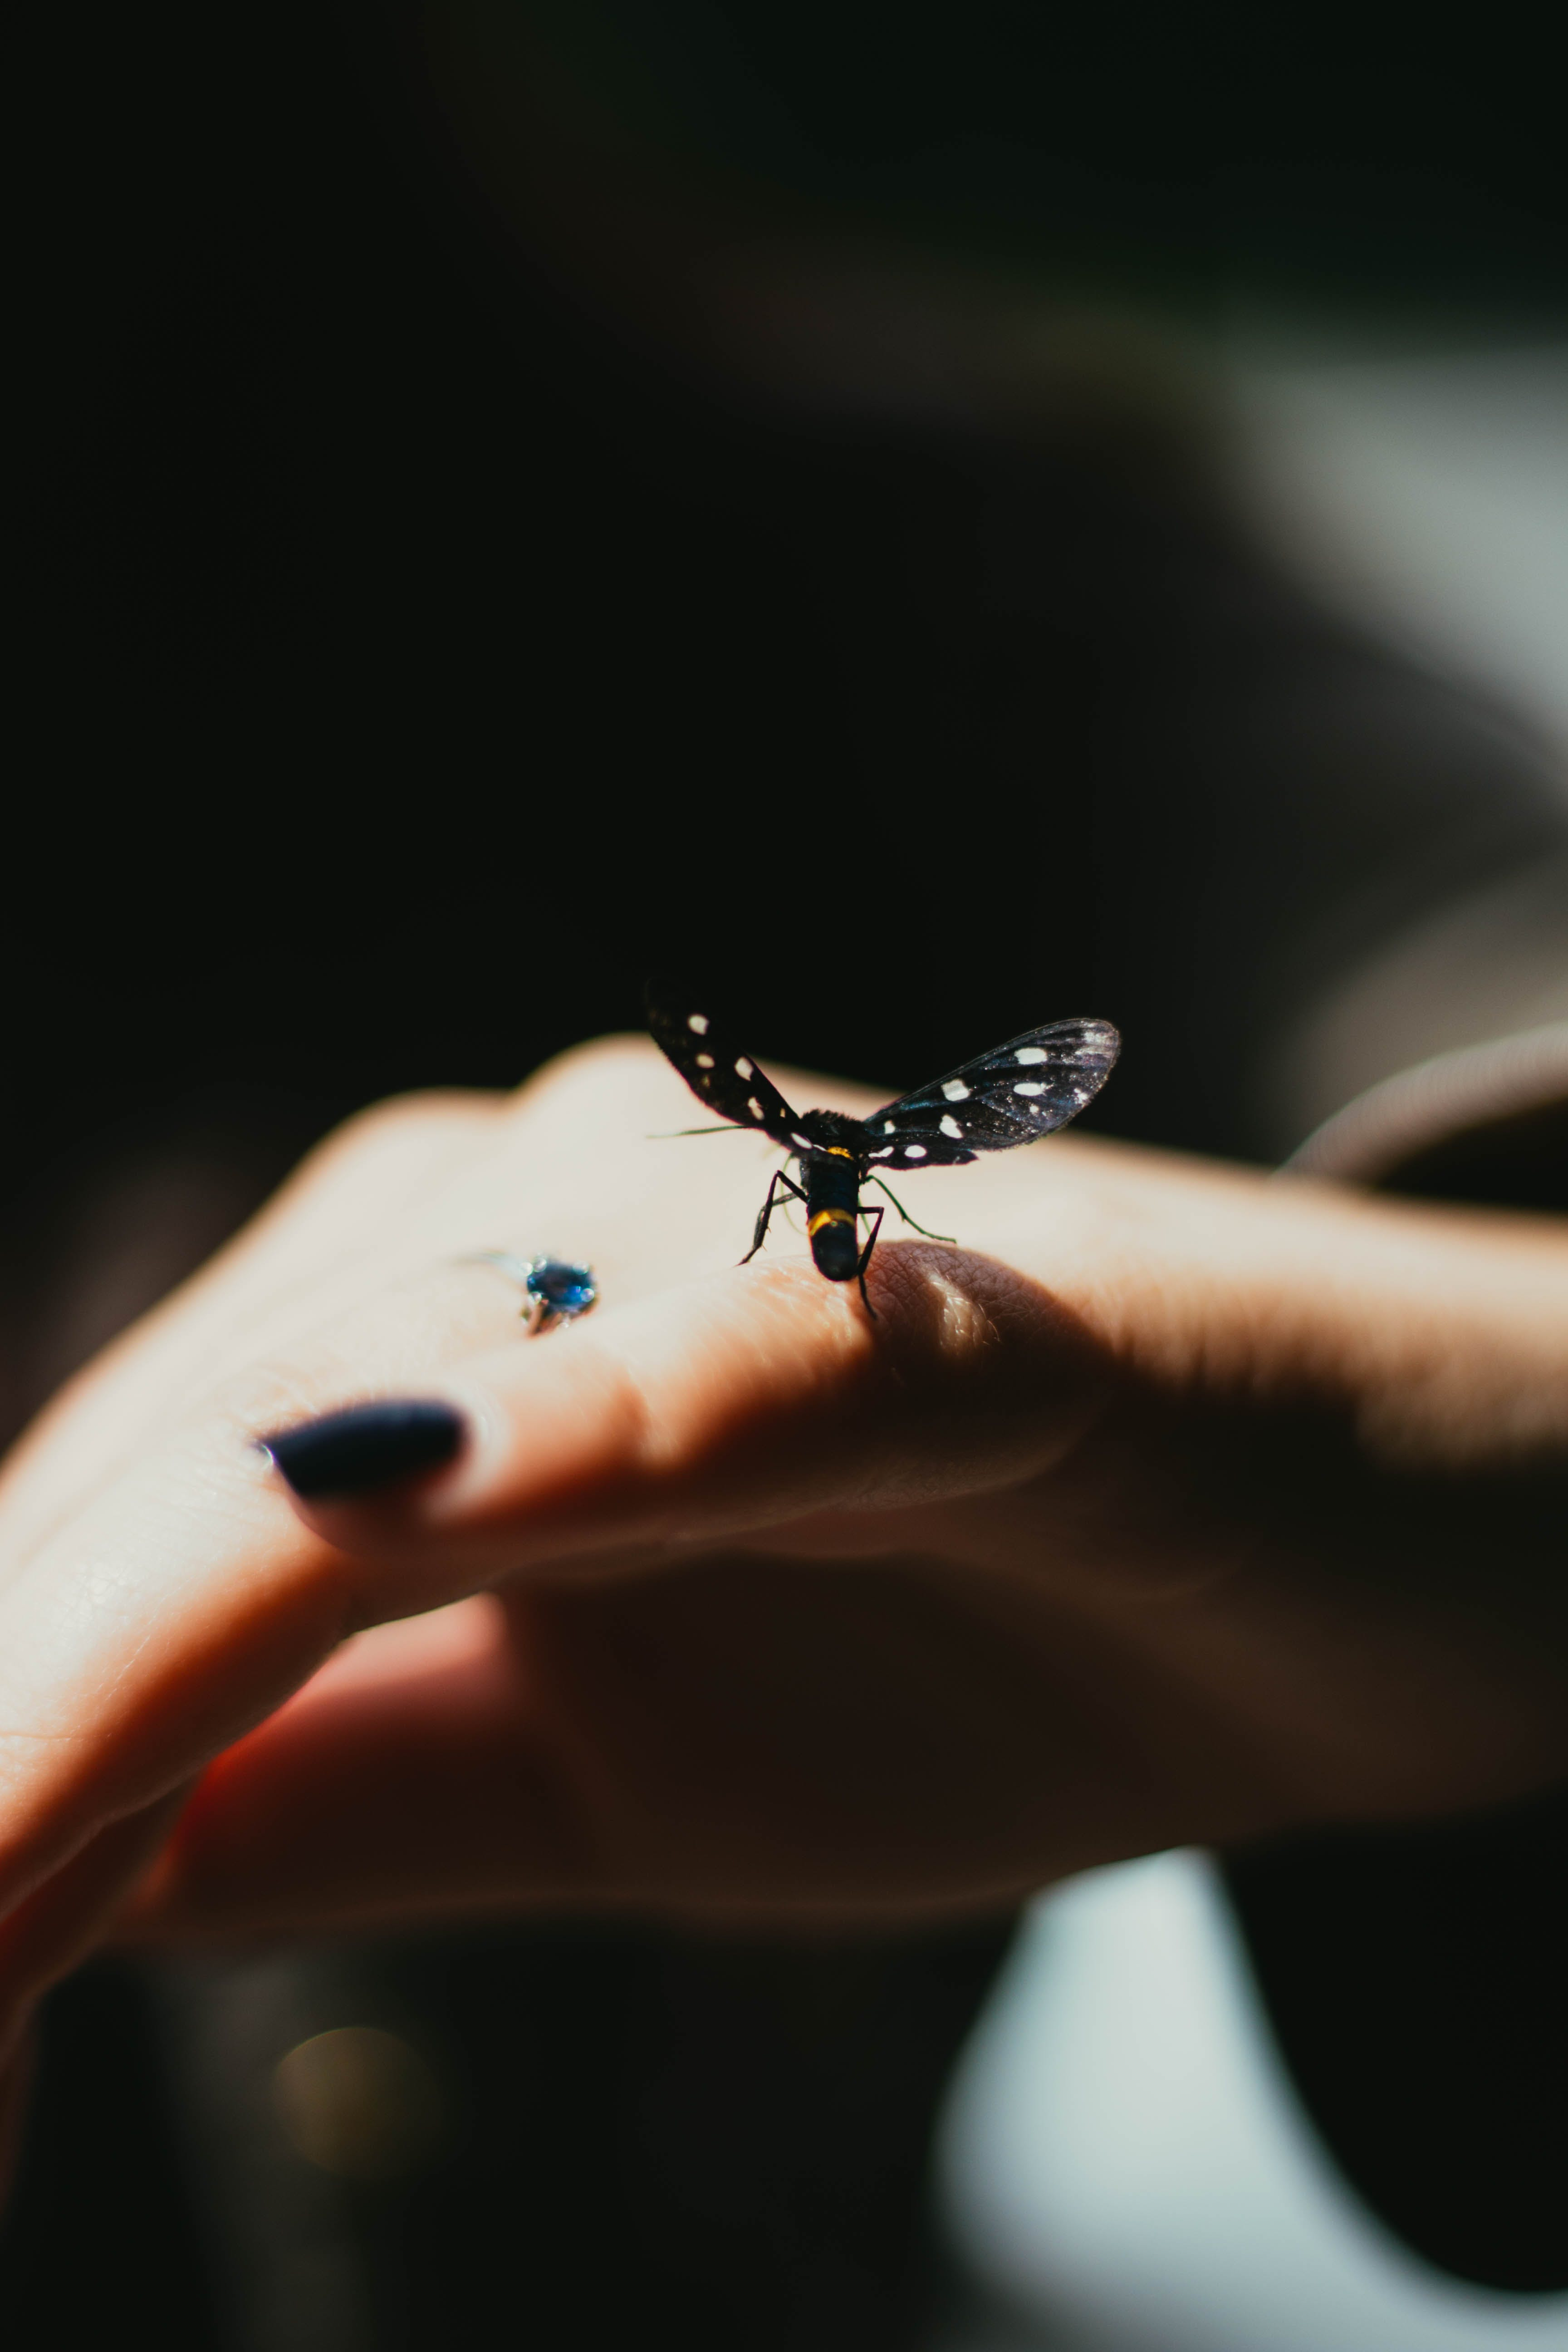 Selective Focus Photography of Black Winged Insect Perched on Person's Pinky Finger